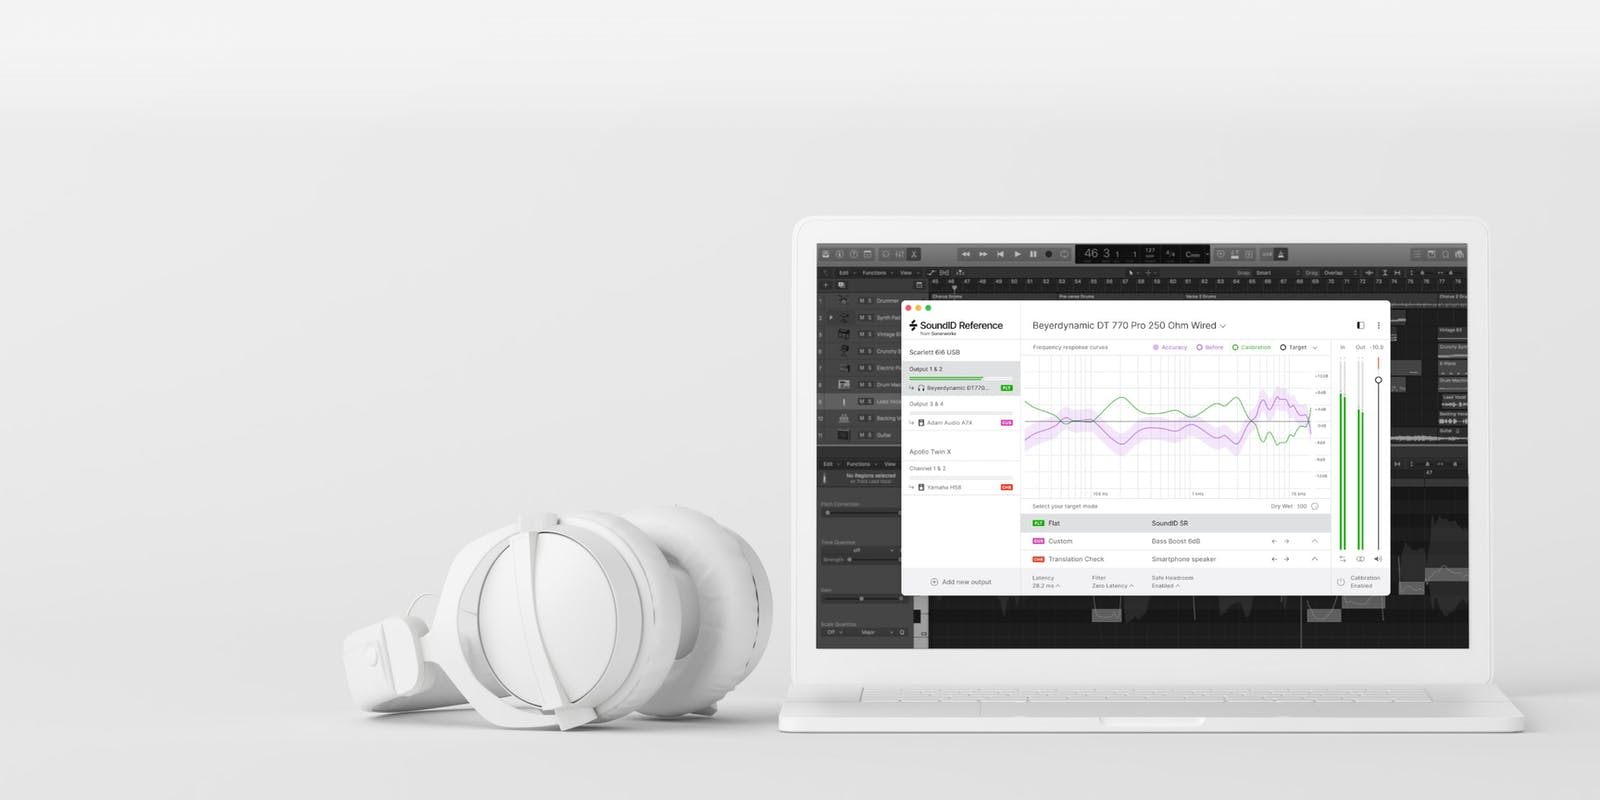 Soundid Reference for headphones on a desktop PC